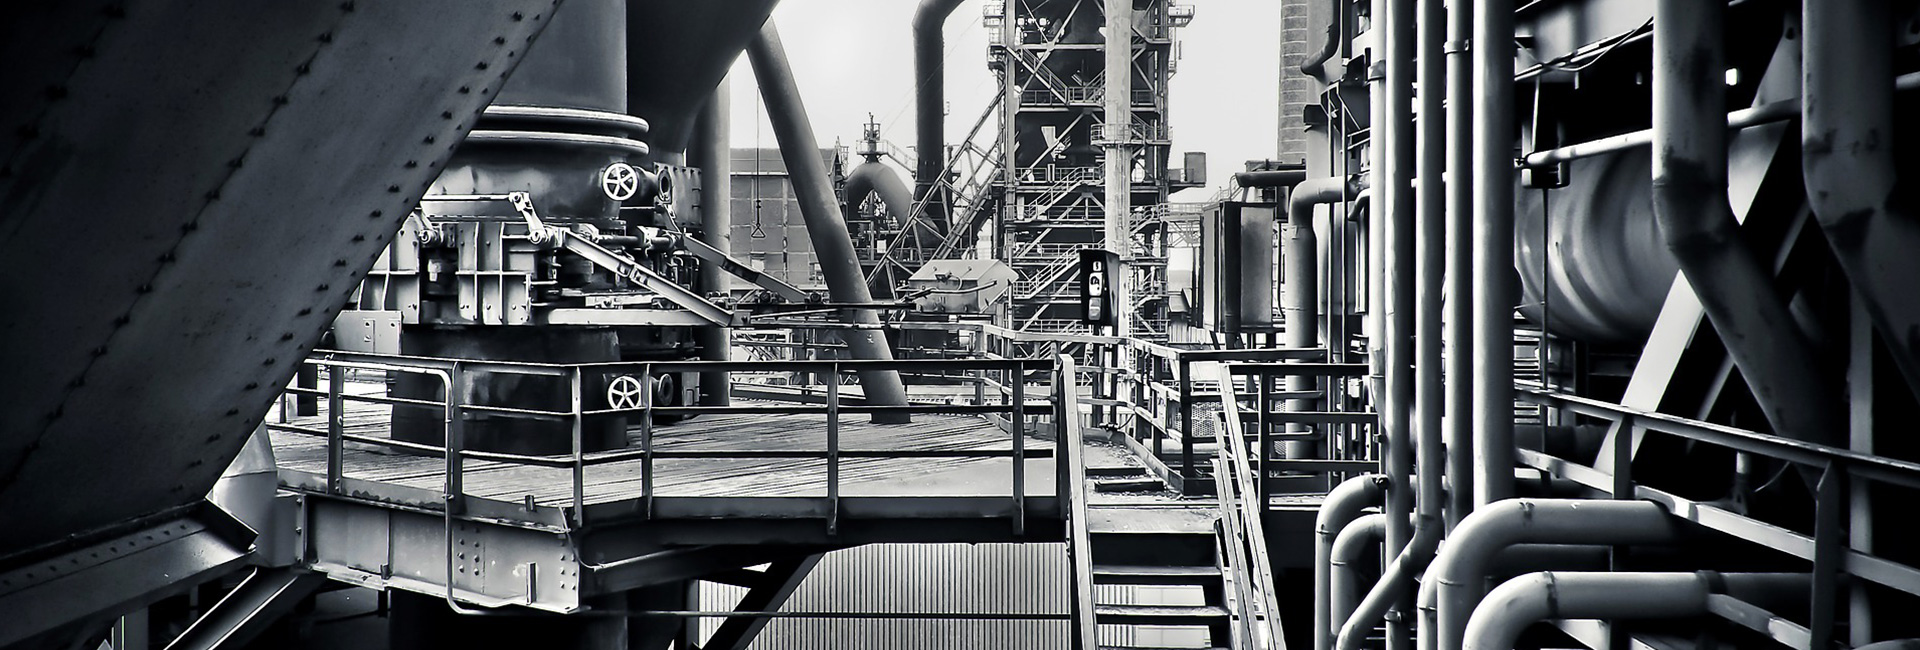 About Page 2 – Industrial